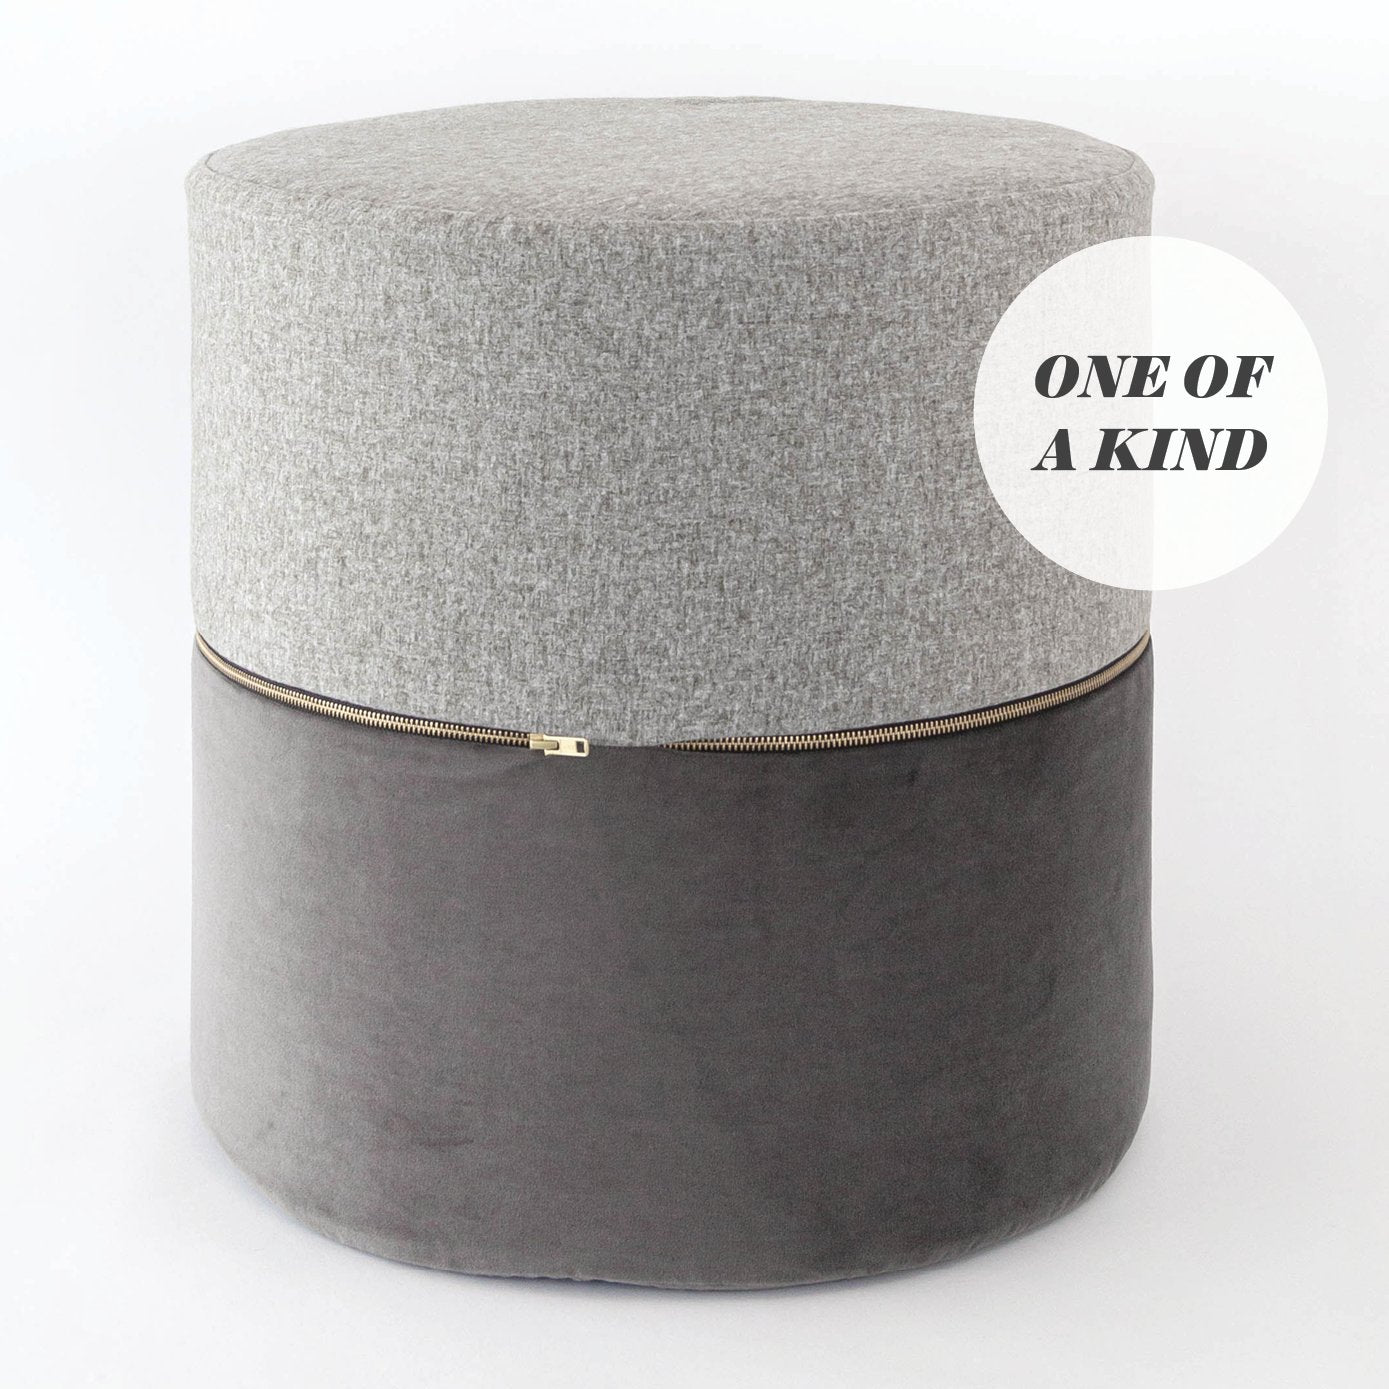 Wondrous Two Toned Gray Round Ottoman Stool One Of A Kind Ibusinesslaw Wood Chair Design Ideas Ibusinesslaworg